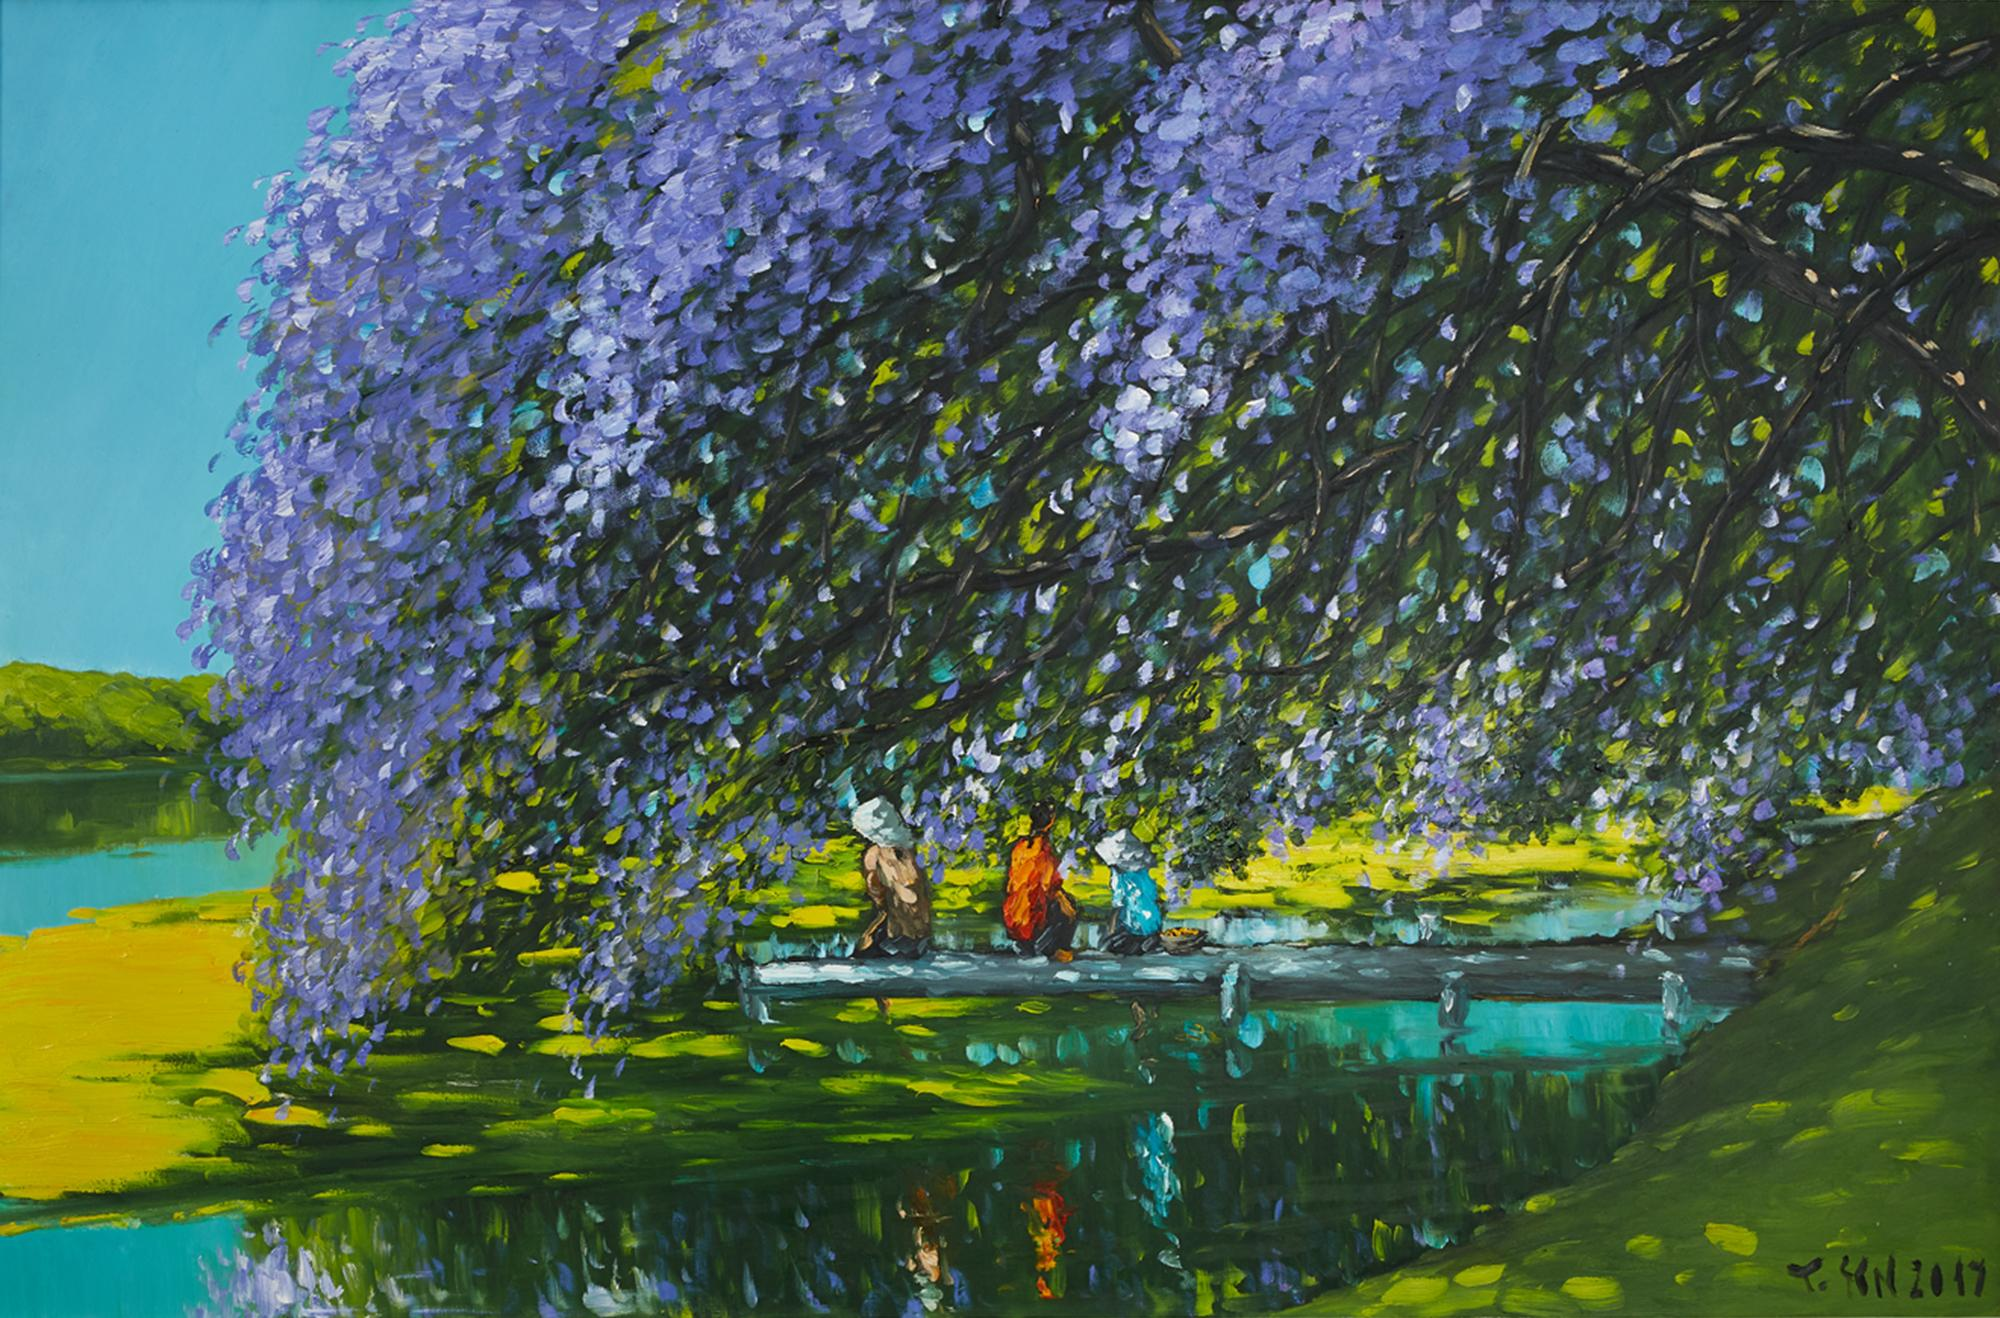 'At The River' Impressionist Landscape Painting